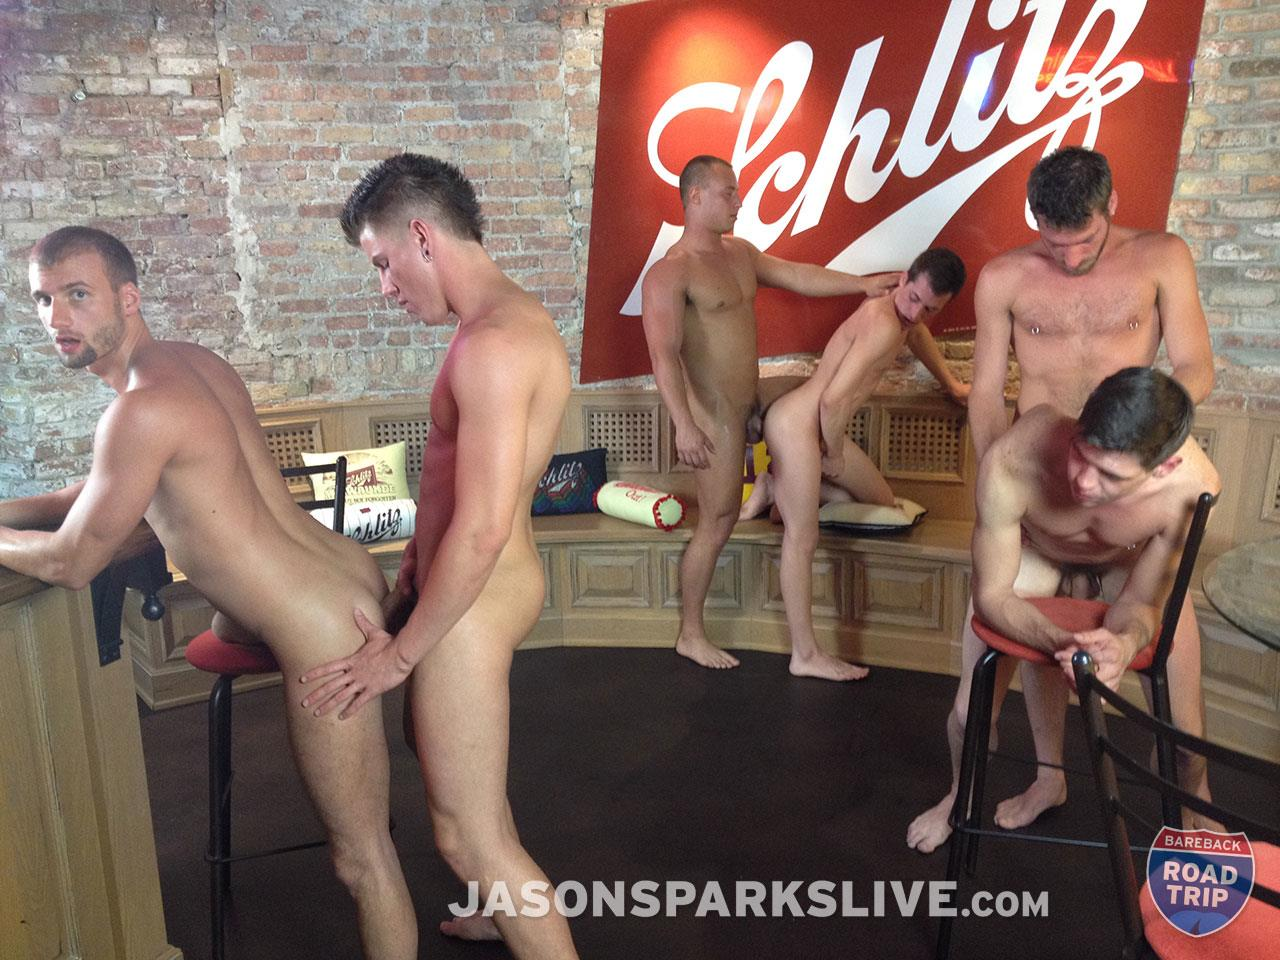 Jason Sparks Live Dustin Tyler Shawn Andrews Brendon Scott Corbin Riley Antonio Paul Jake Matthews Bareback Orgy Amateur Gay Porn 12 Big Cock Amateur Bareback Orgy in Milwaukee